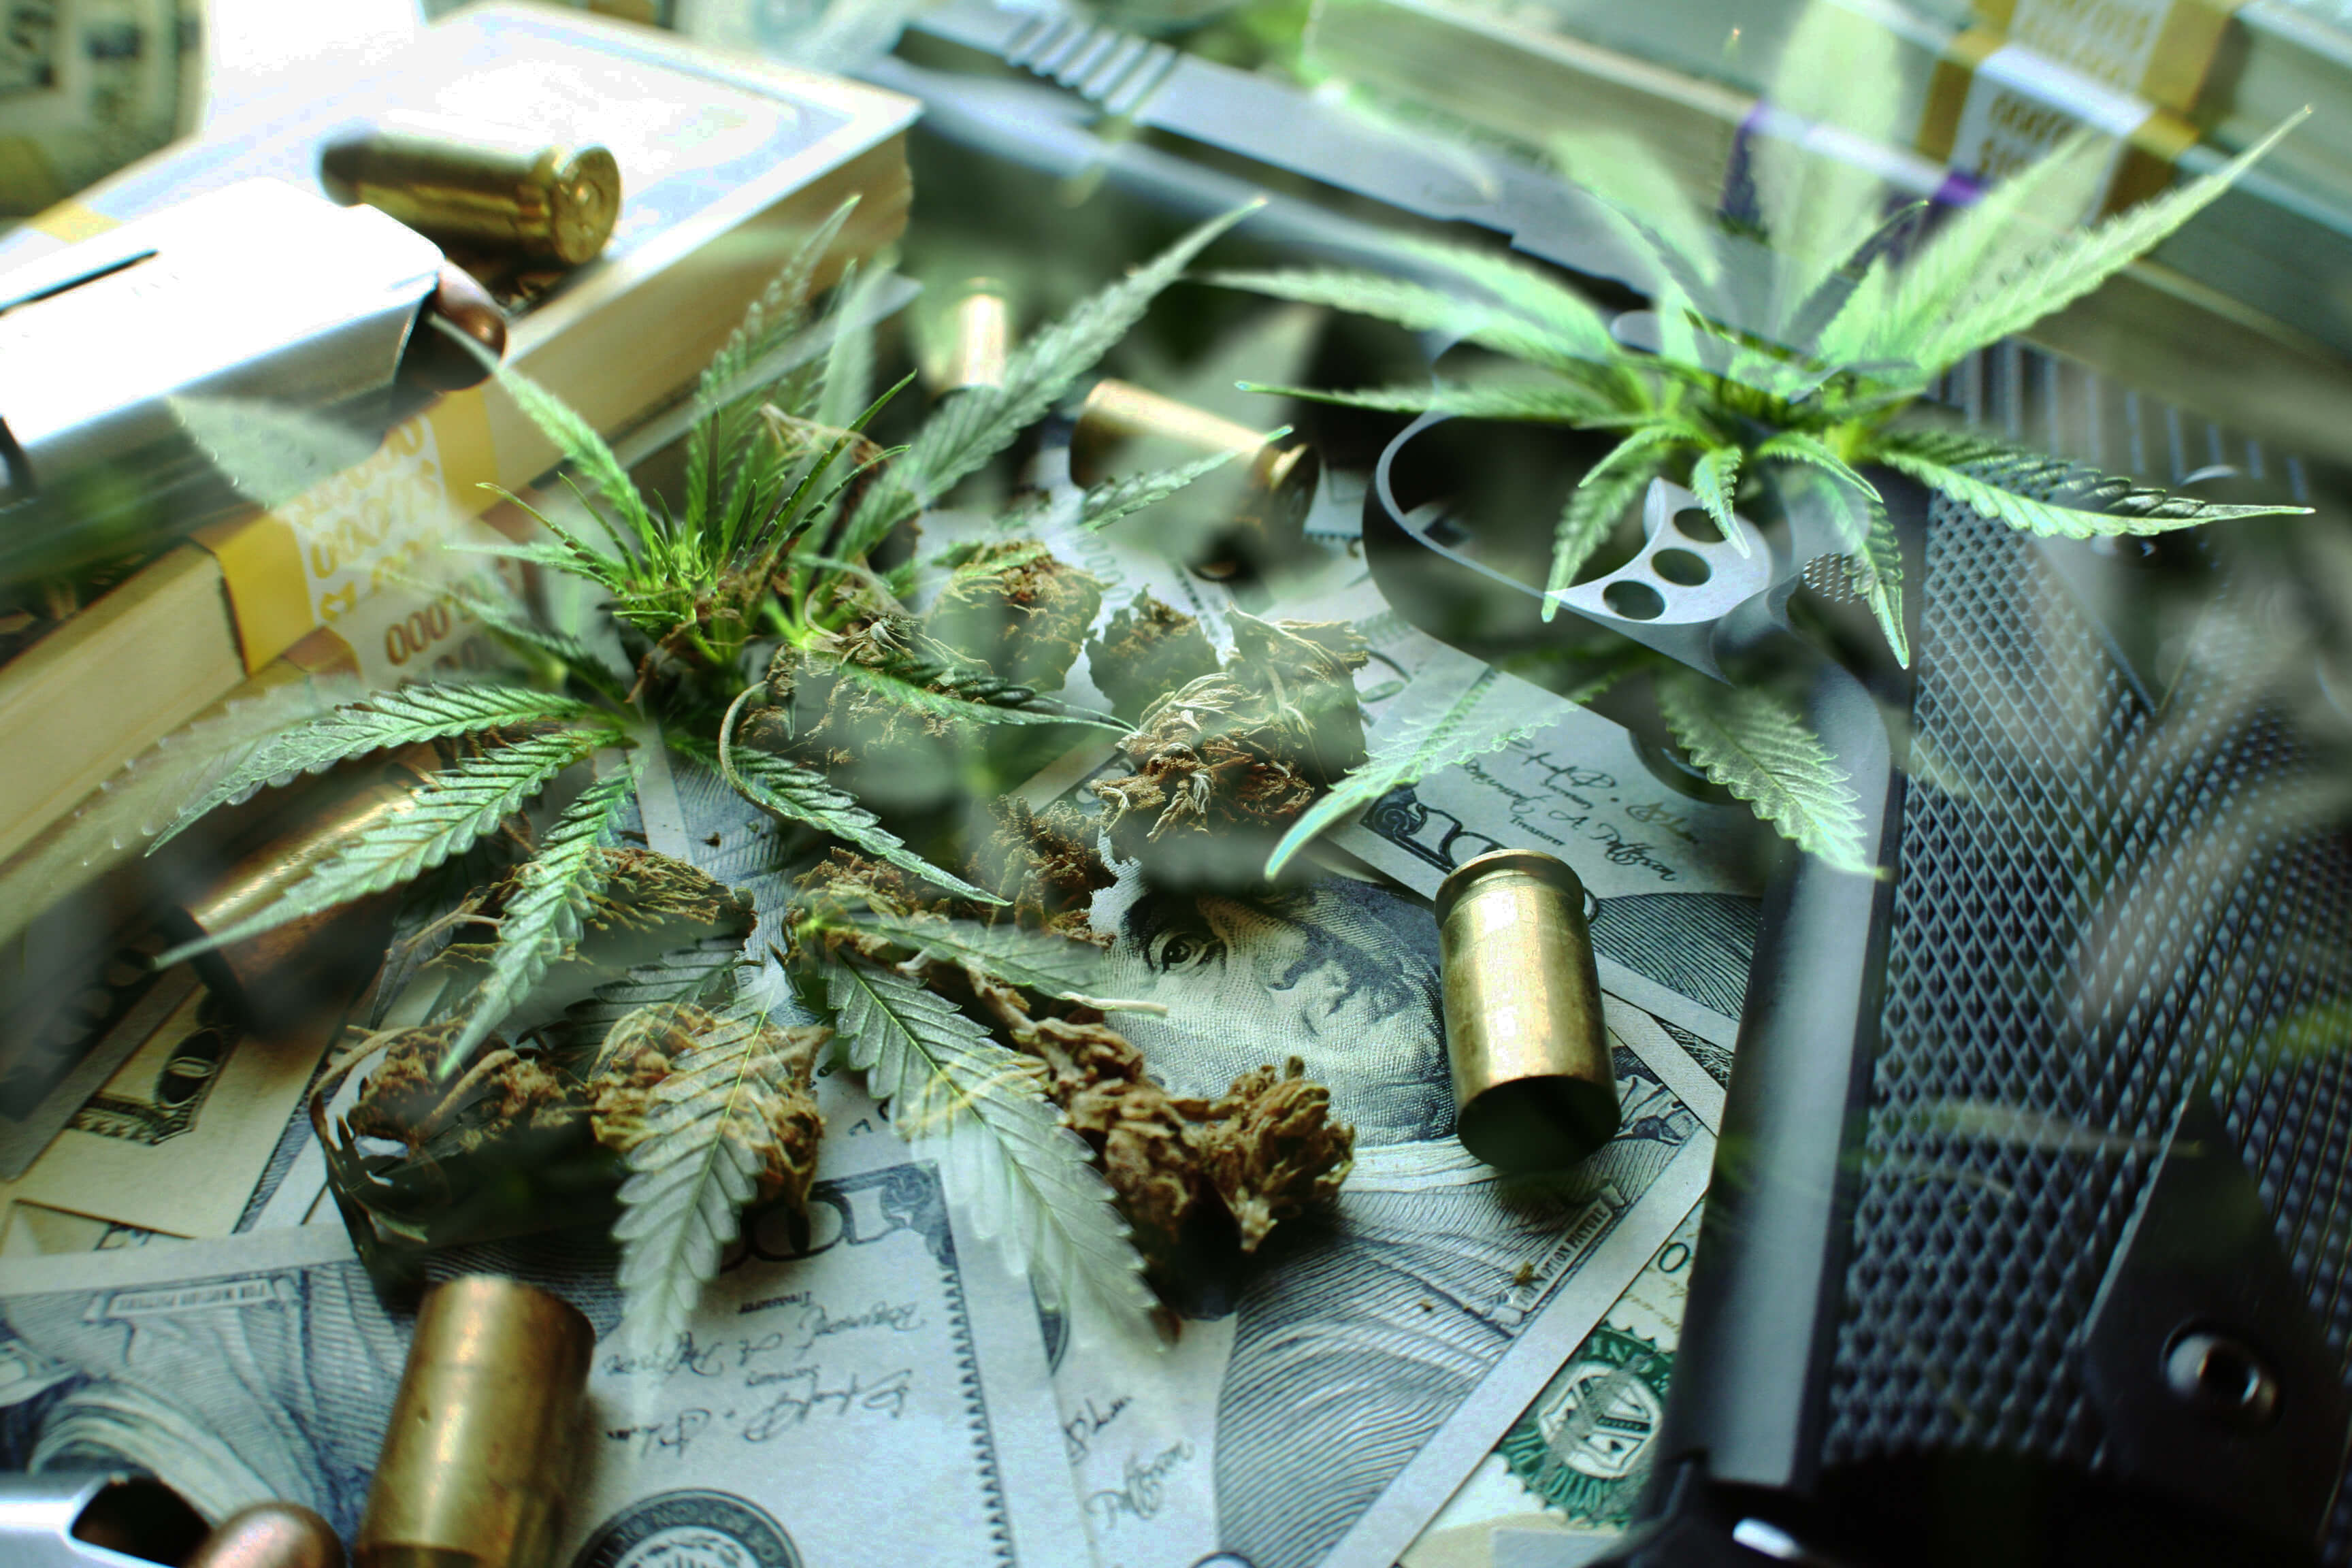 Marijuana leaves, used bullets and money.